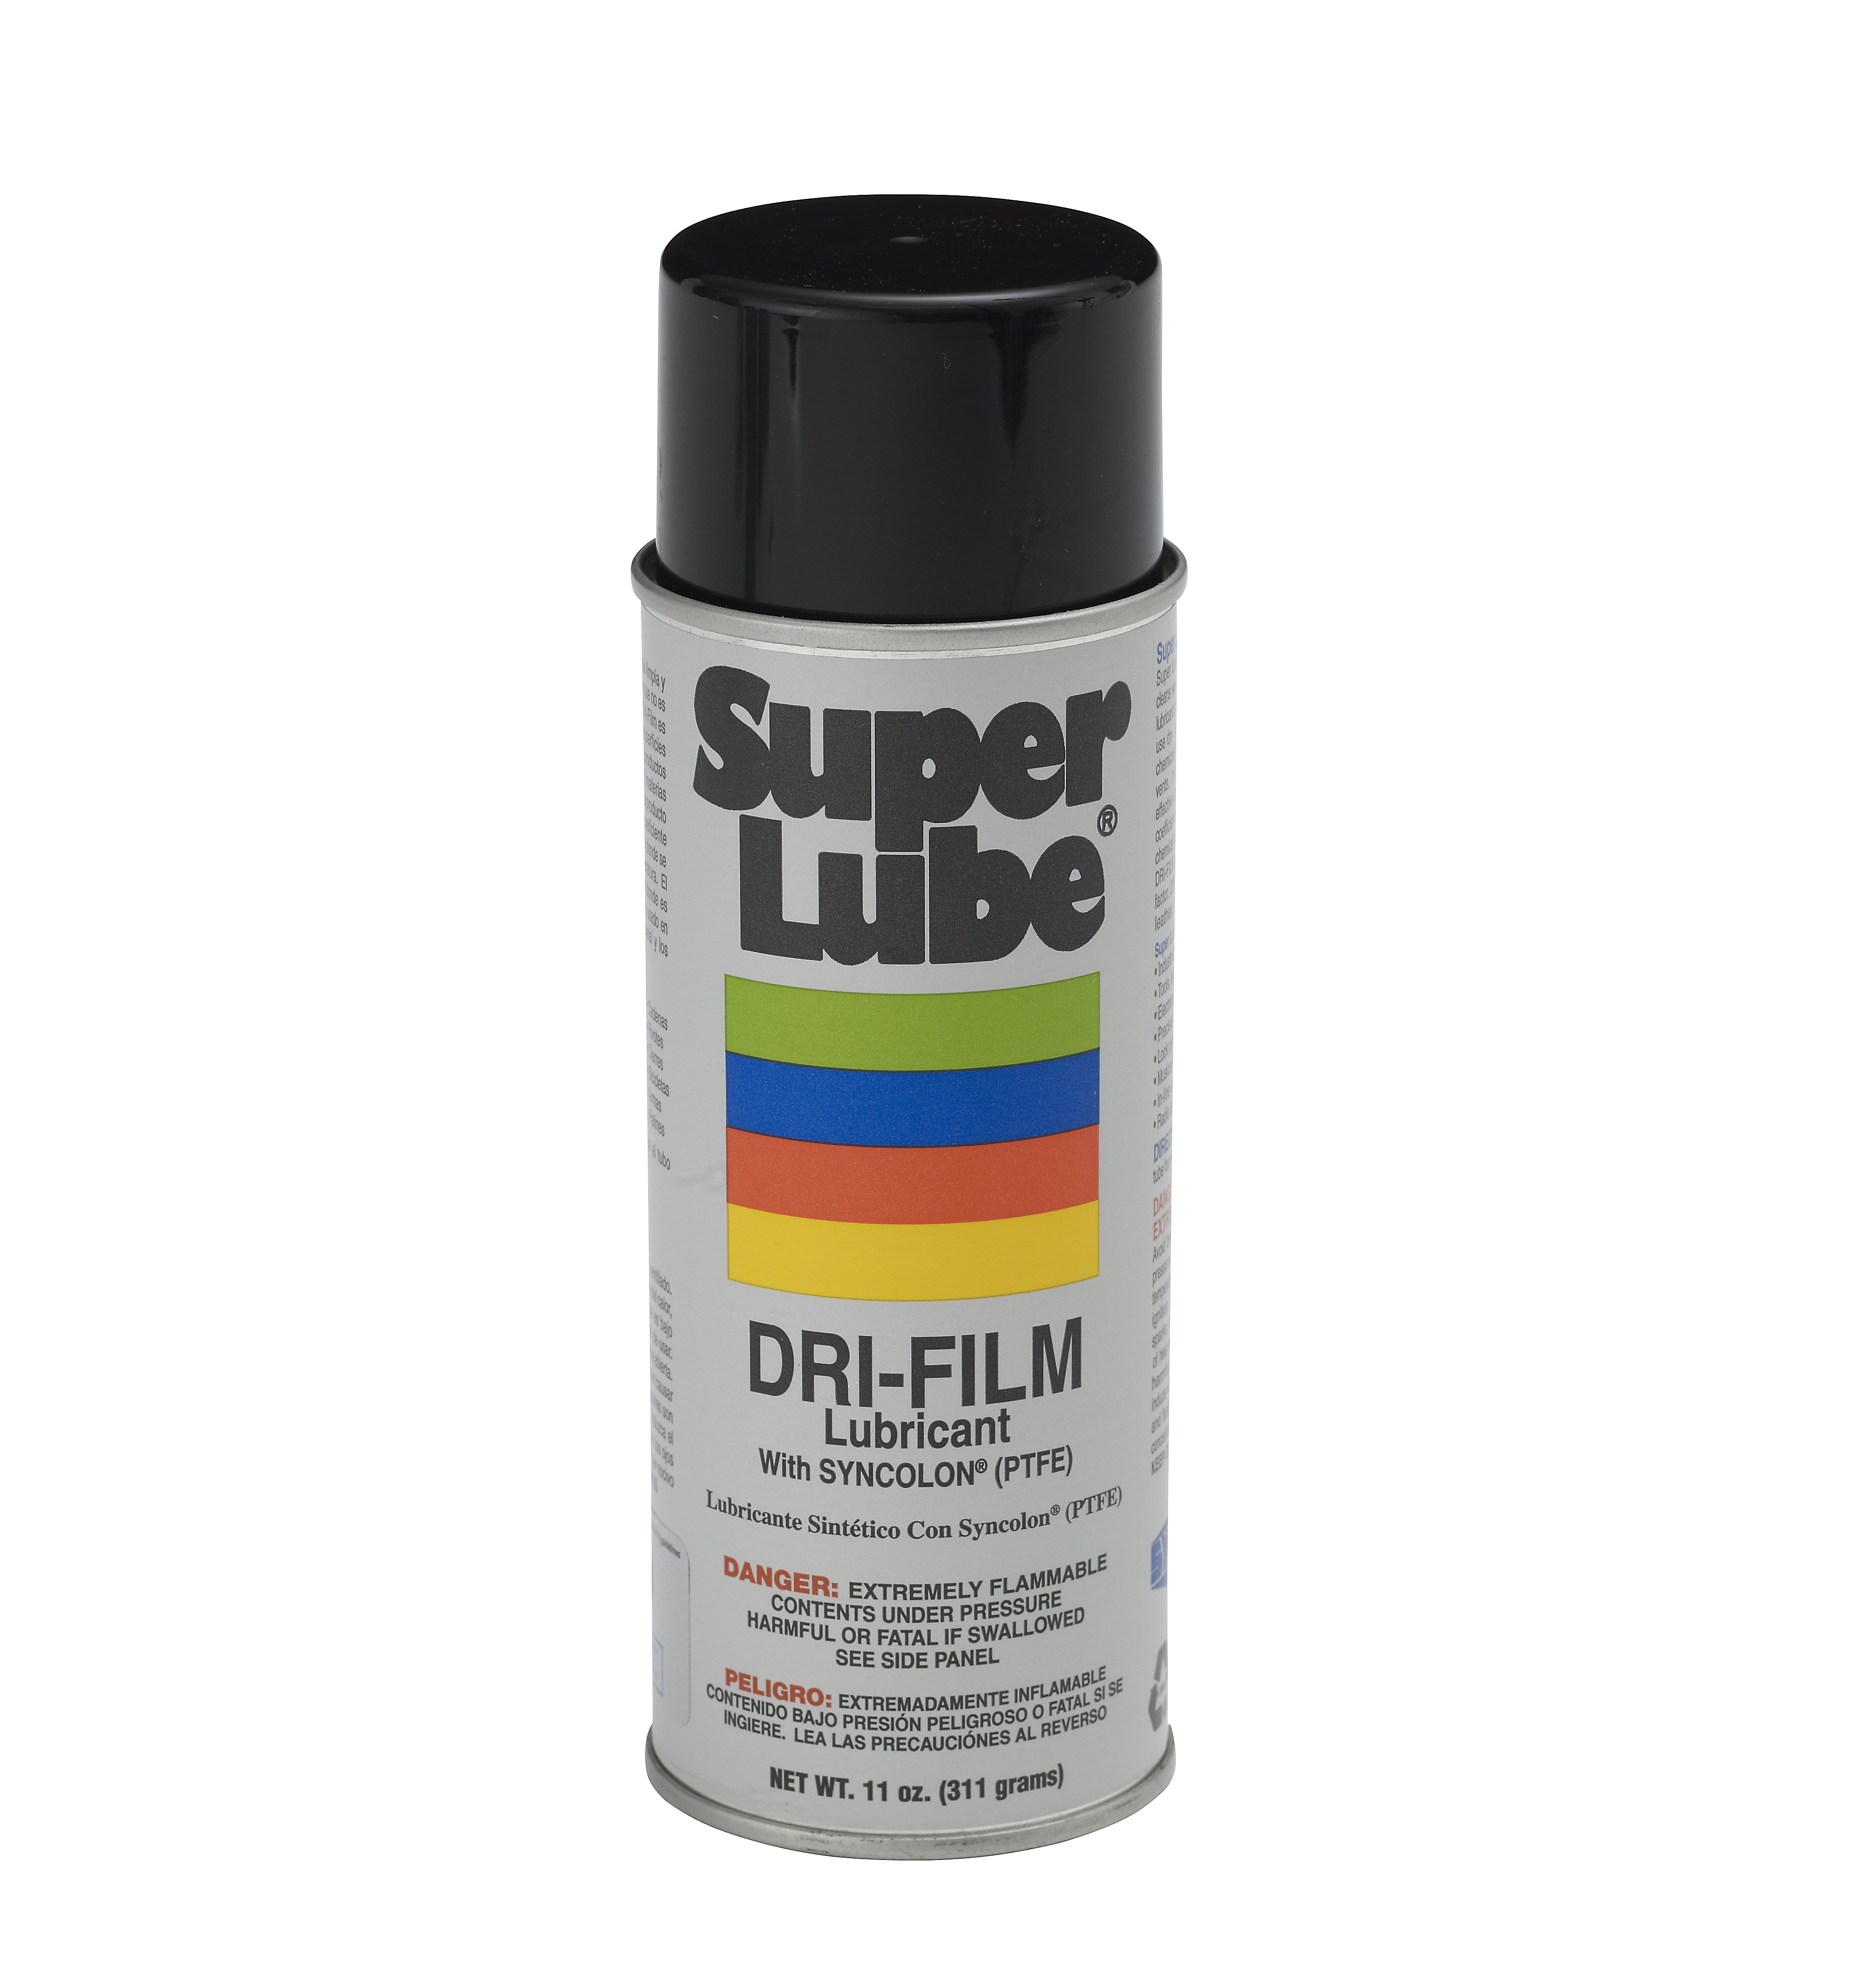 11016_-_Dri-Fil_Lubricant_with_Syncolon_PTFE_11oz_